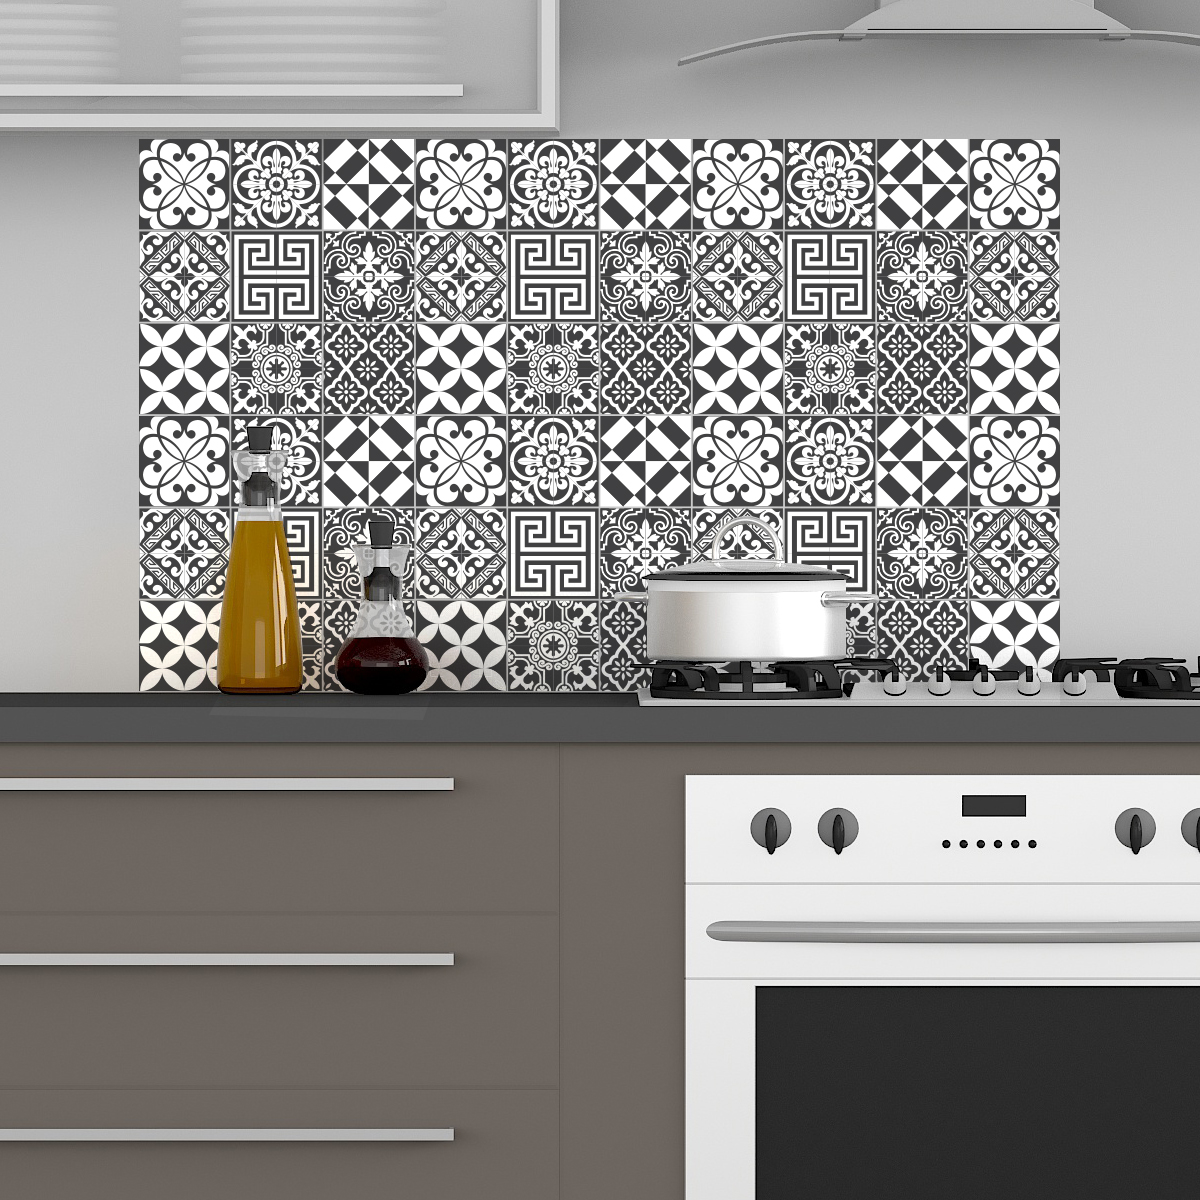 60 stickers carrelages tiles traditionnels nuance de gris art et design artistiques ambiance. Black Bedroom Furniture Sets. Home Design Ideas